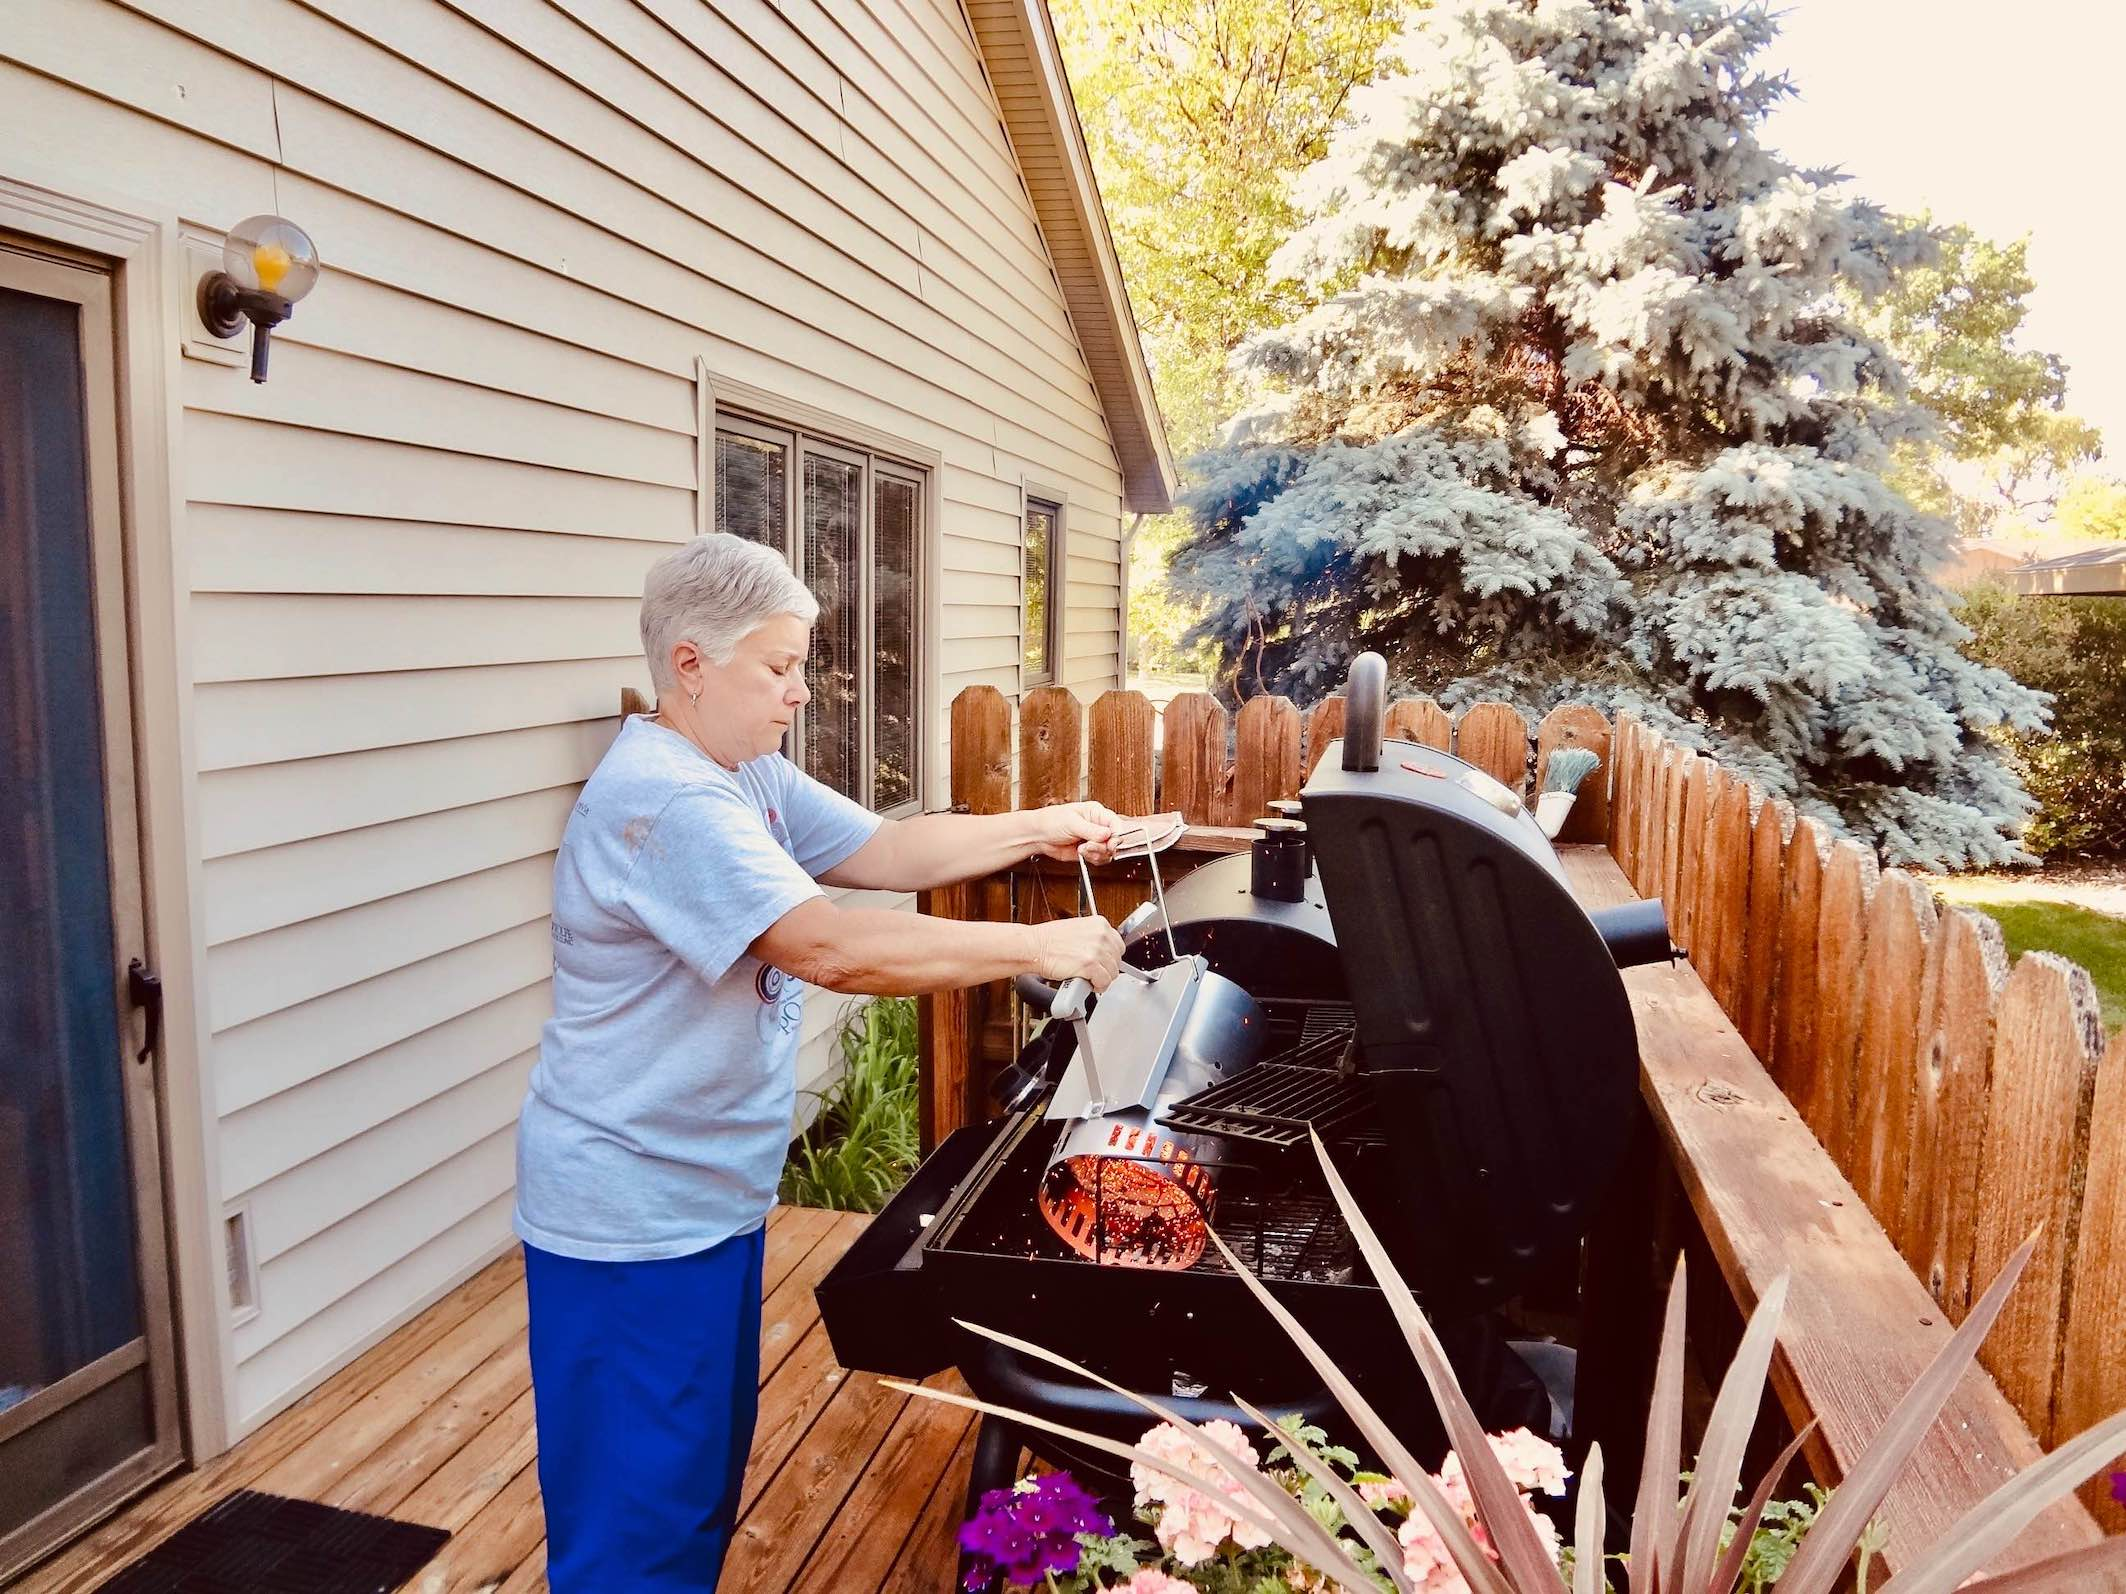 Barbecuing in Nevada Iowa.